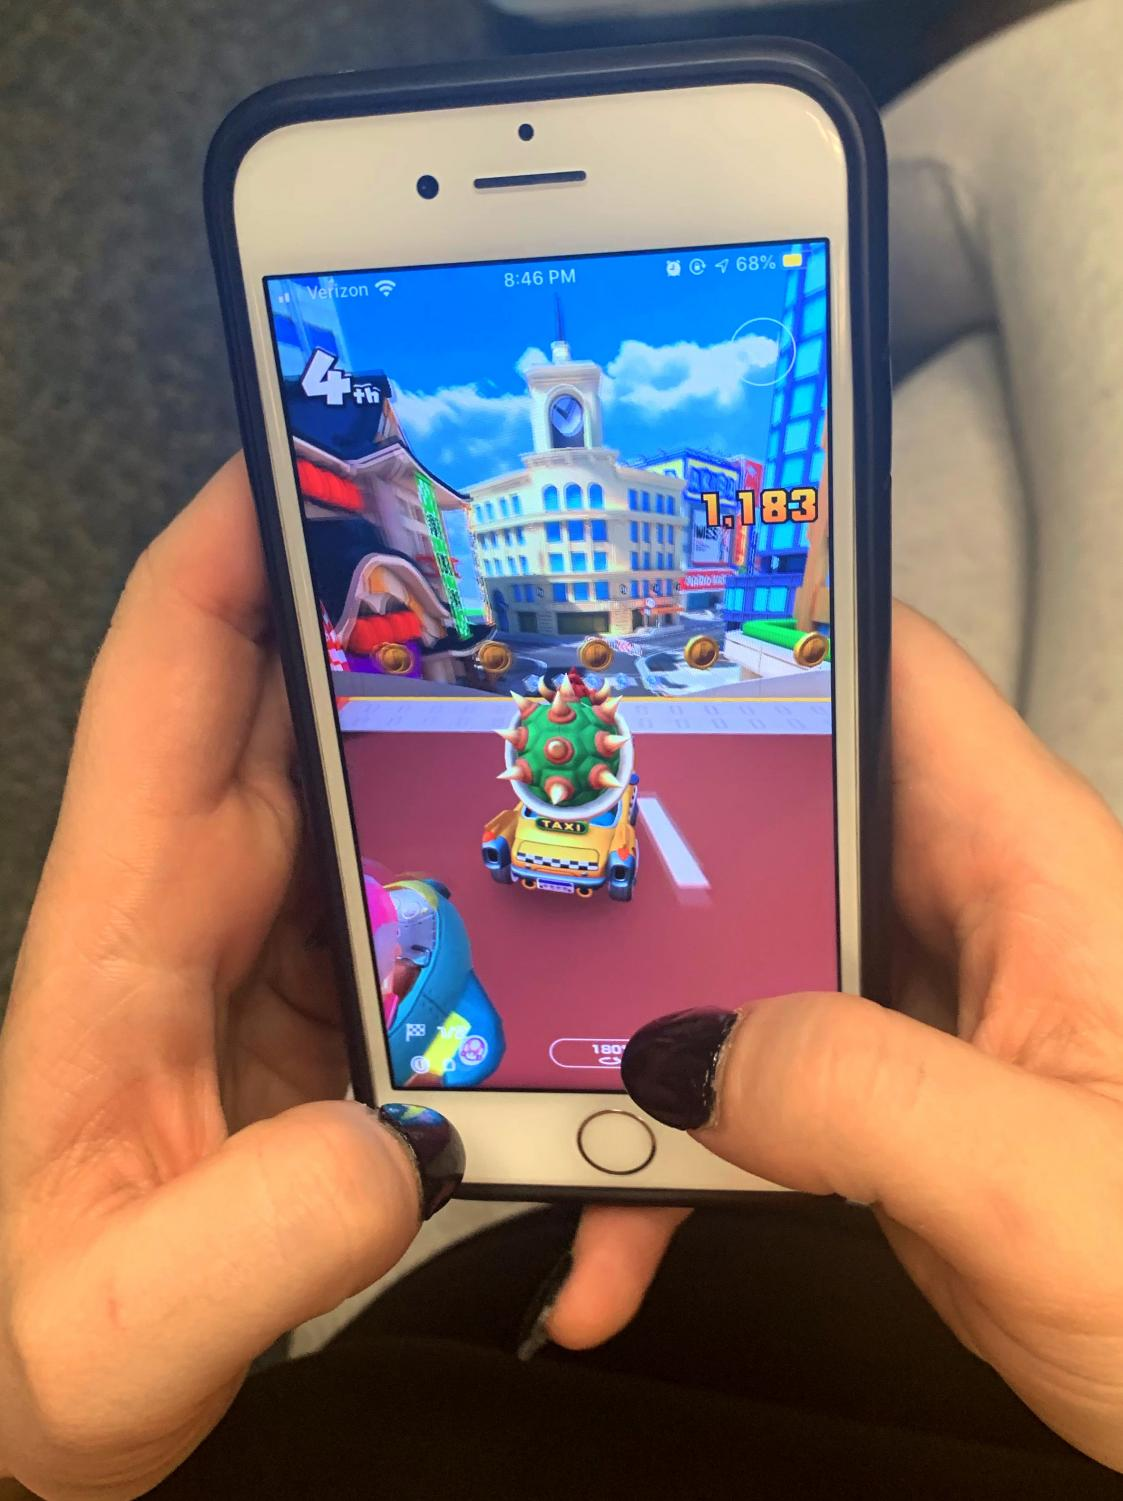 Gamer plays Mario Kart Tour on iPhone, tilting phone and using fingers to control the racing avatar with precision.